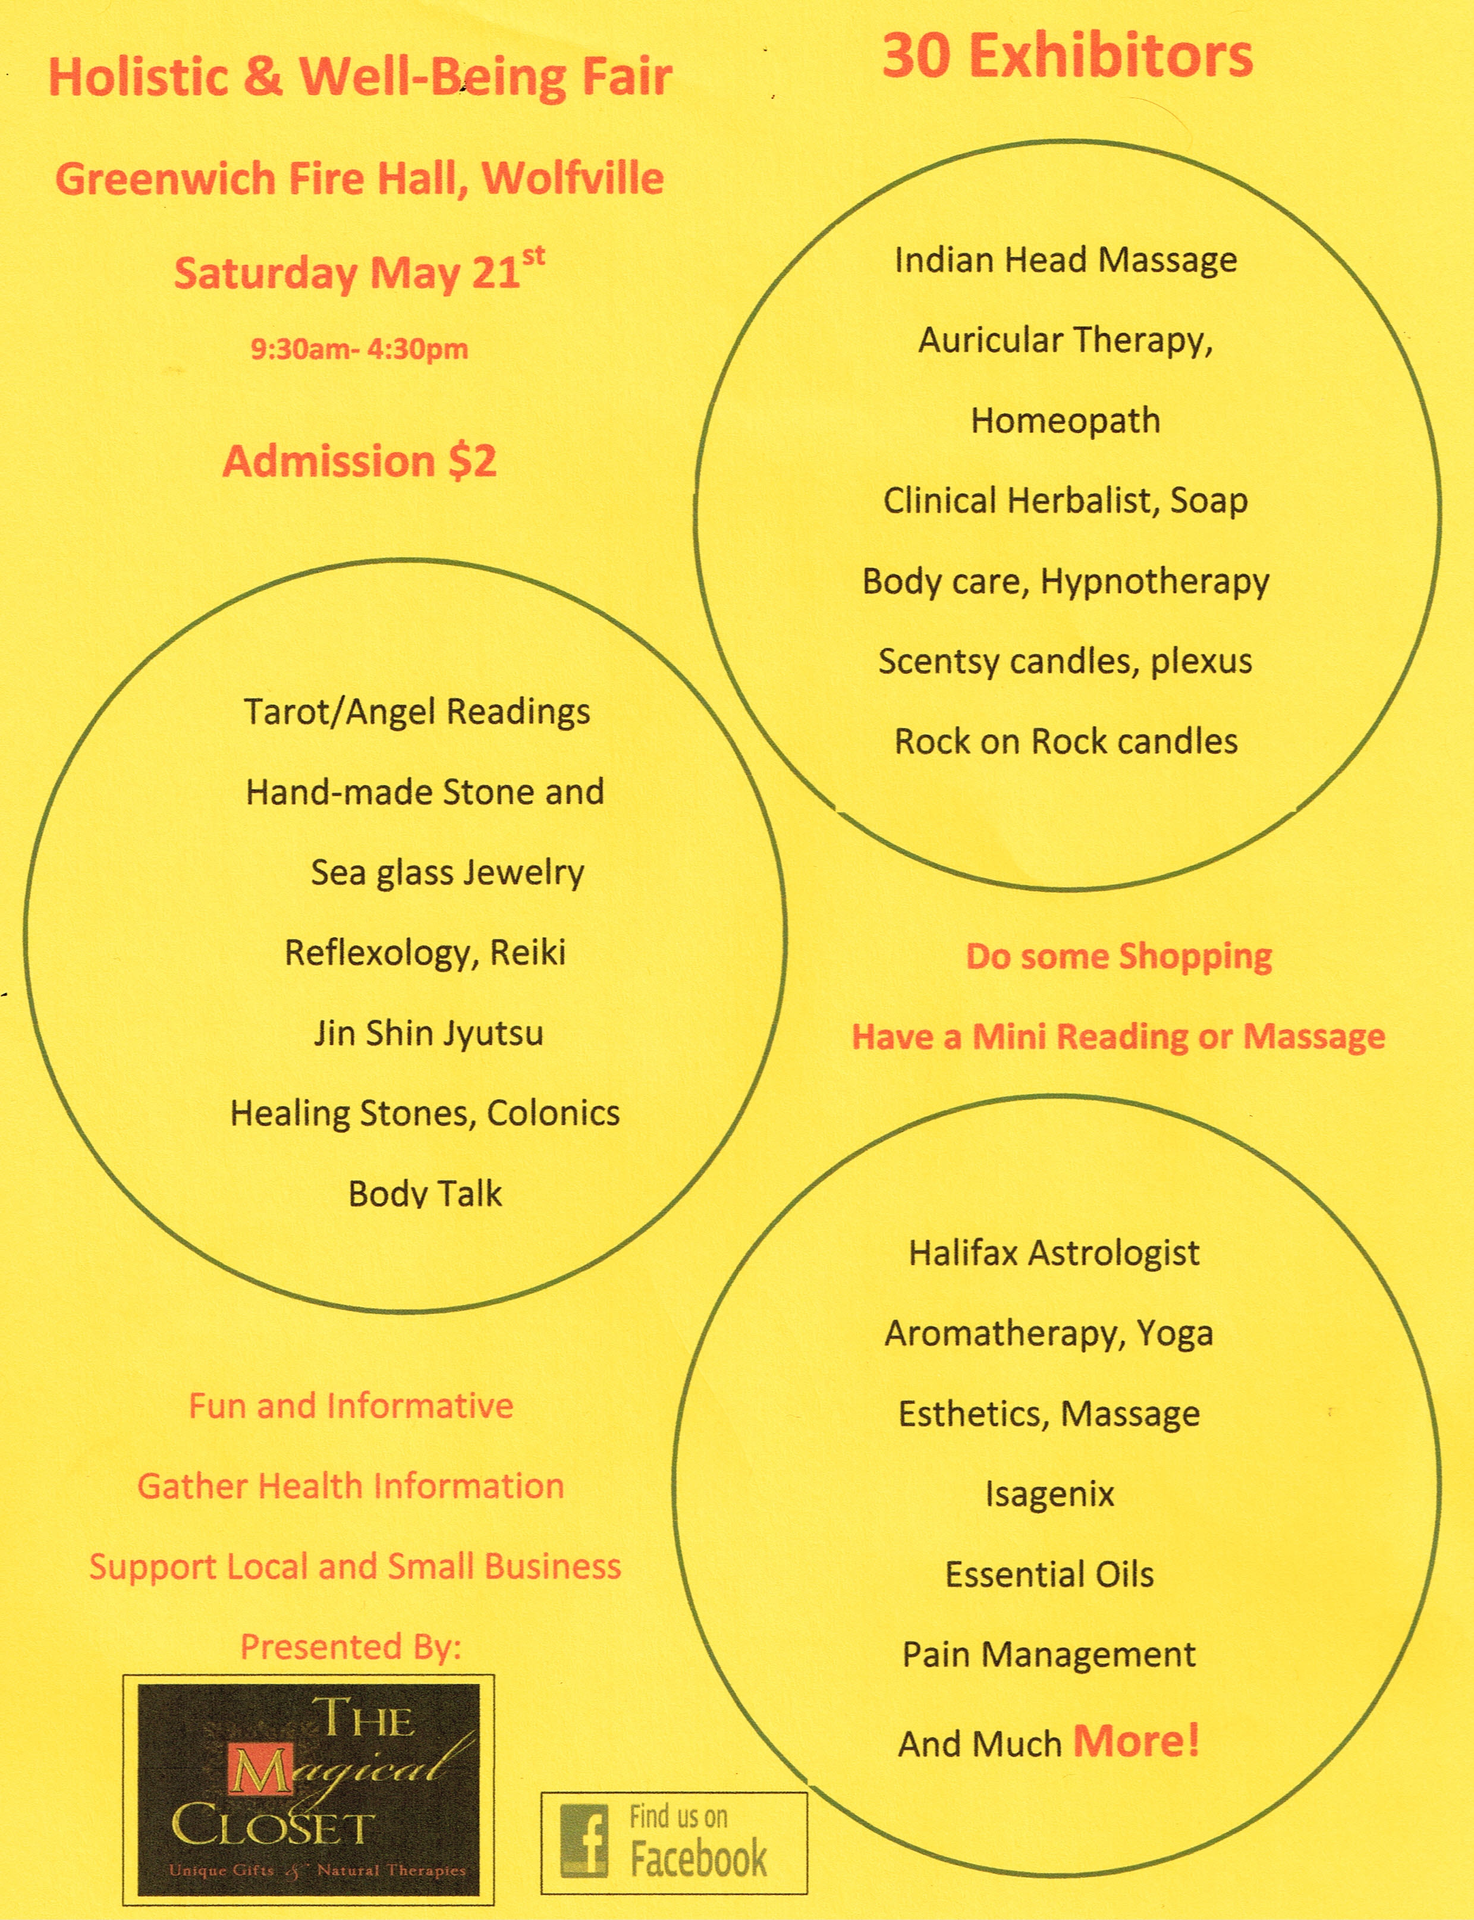 Yahoo Driving Directions Google >> Holistic & Well-Being Fair at Fire Hall, Greenwich (May 21, 2016 9:30am)